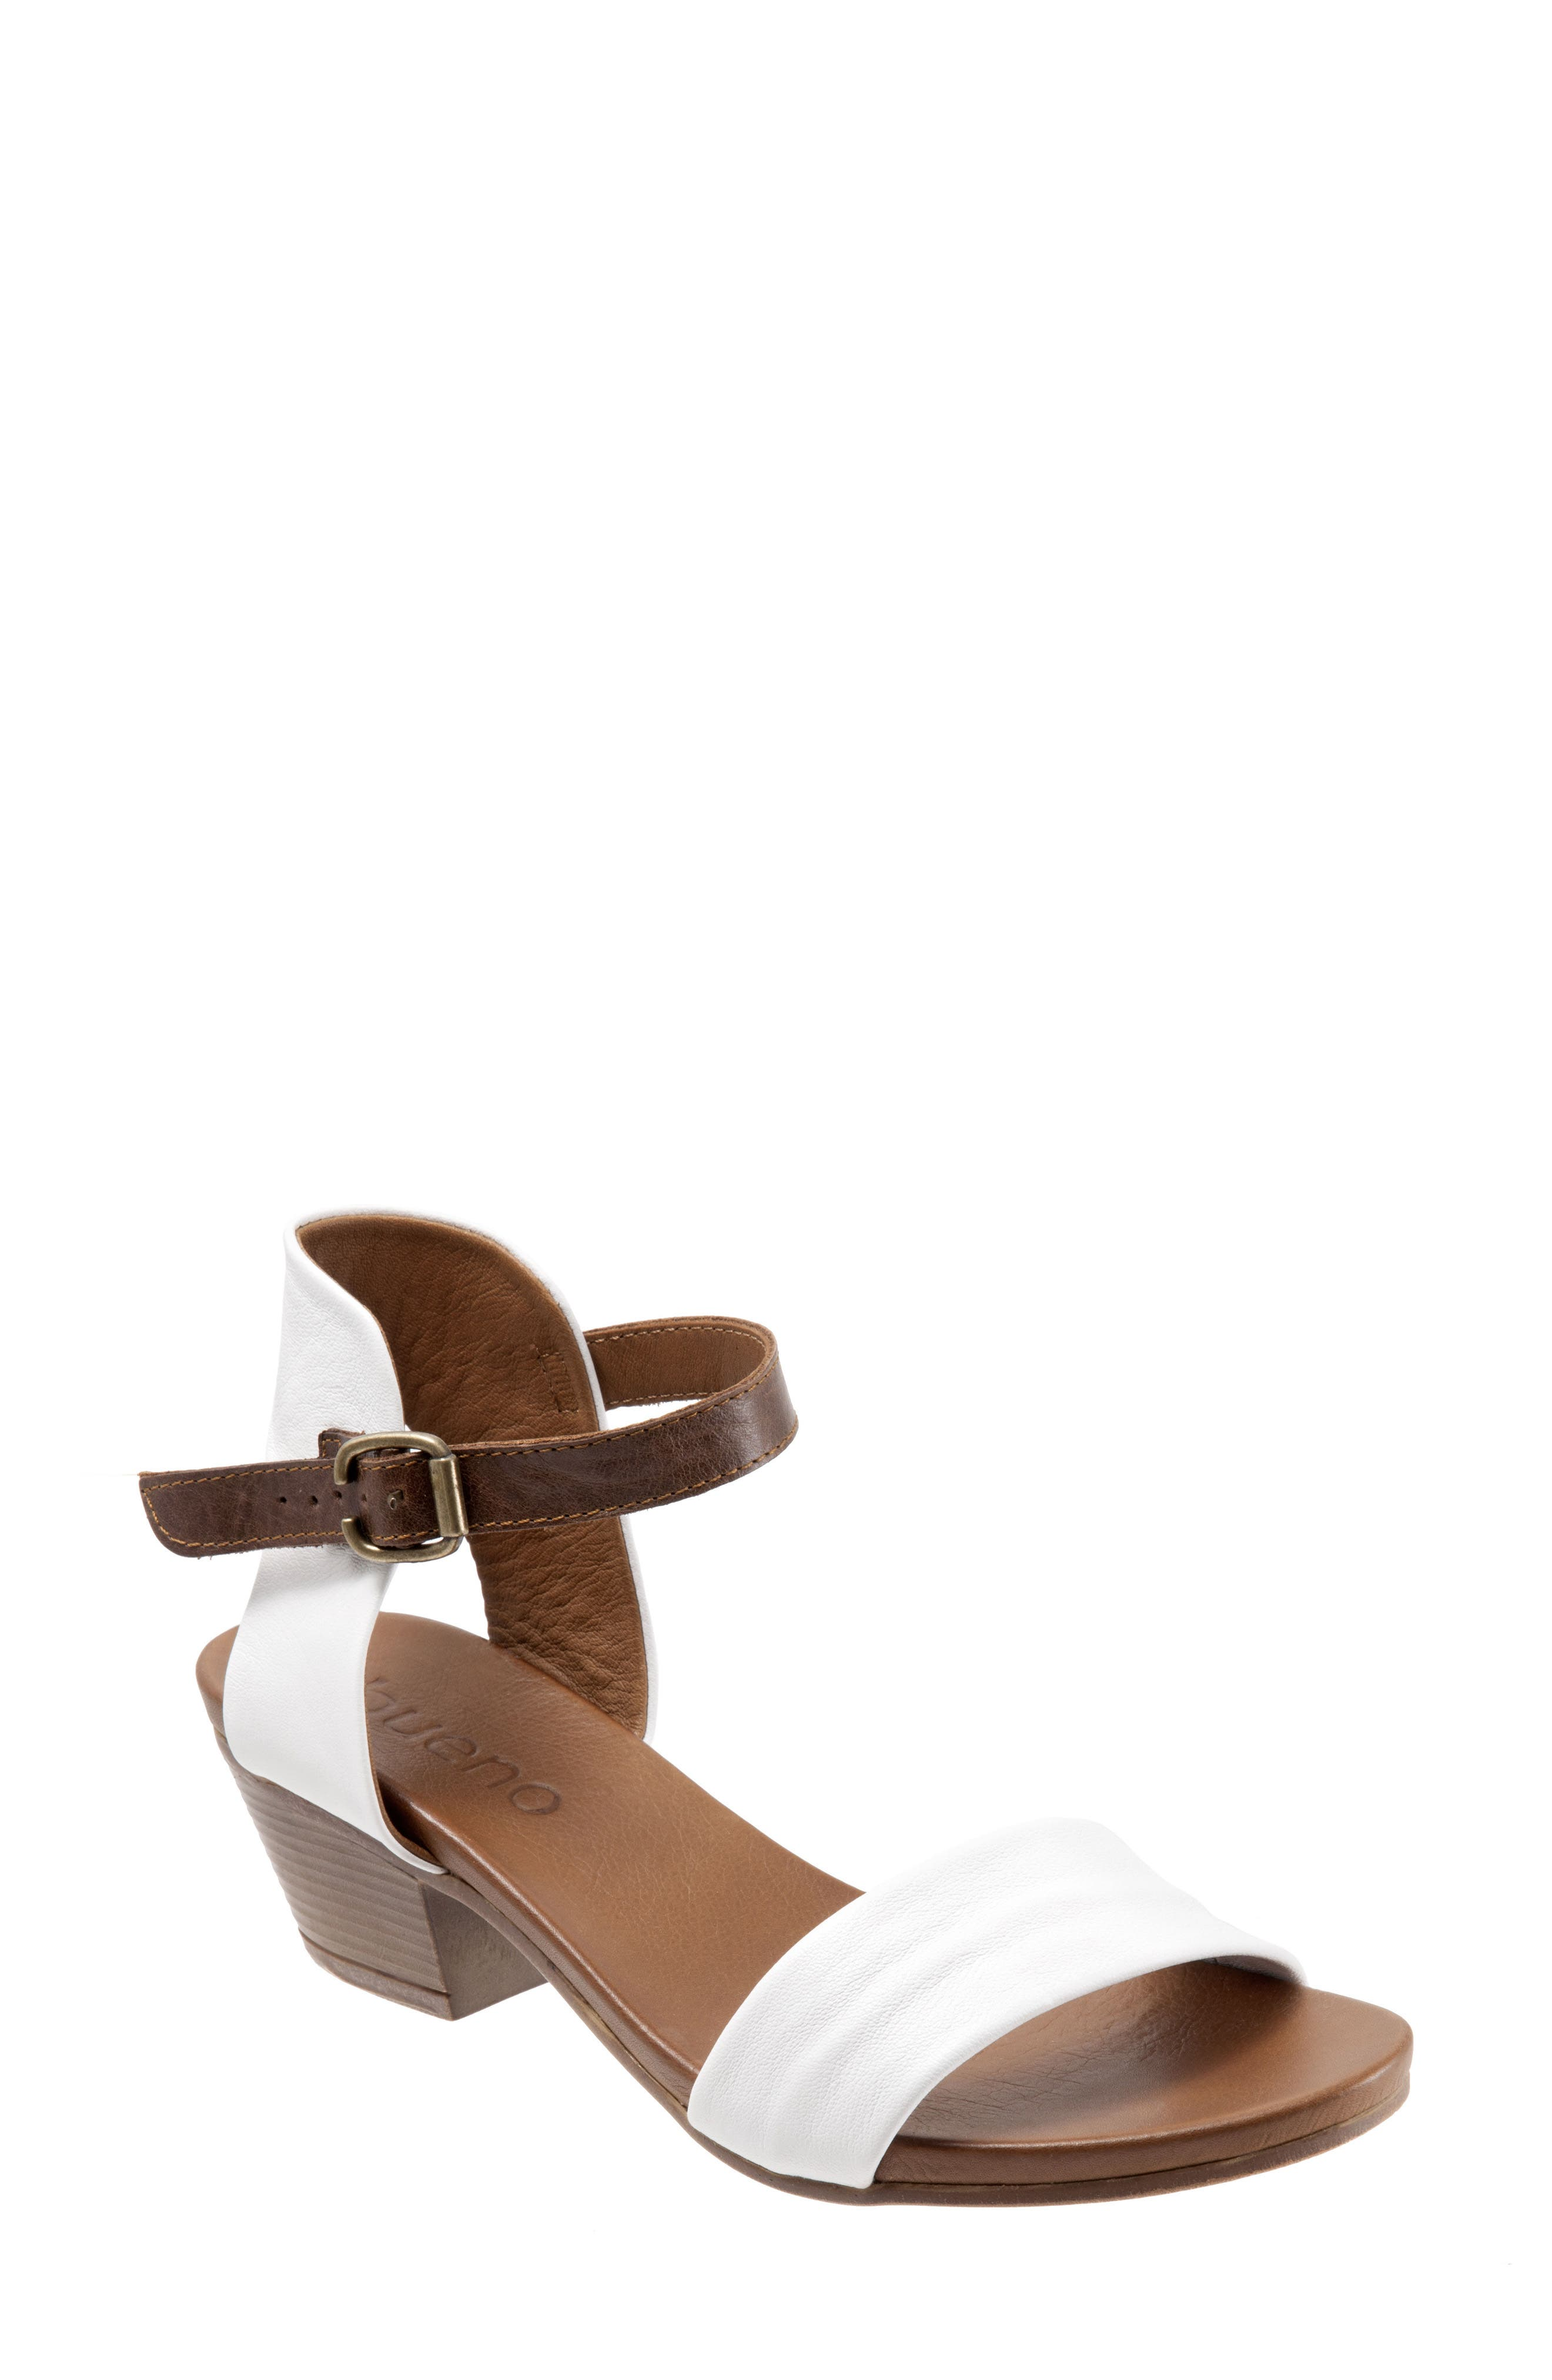 Sue Sandal,                             Main thumbnail 1, color,                             White Leather